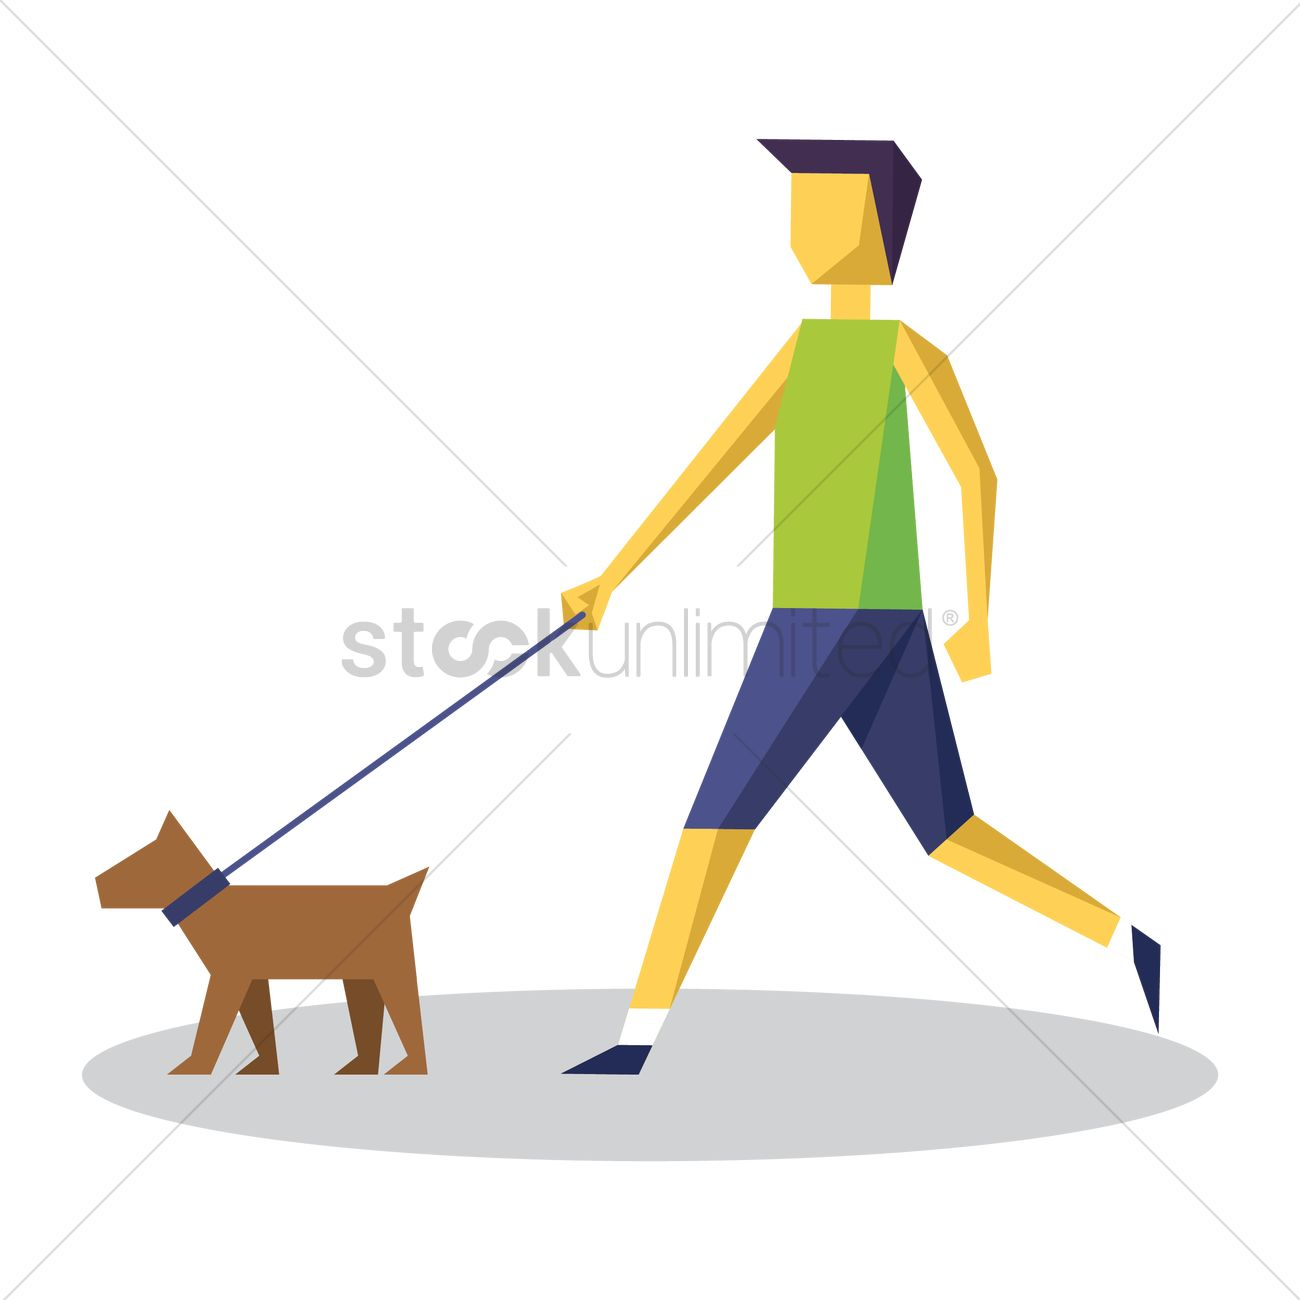 man taking dog for walk vector image 1542147 stockunlimited stockunlimited